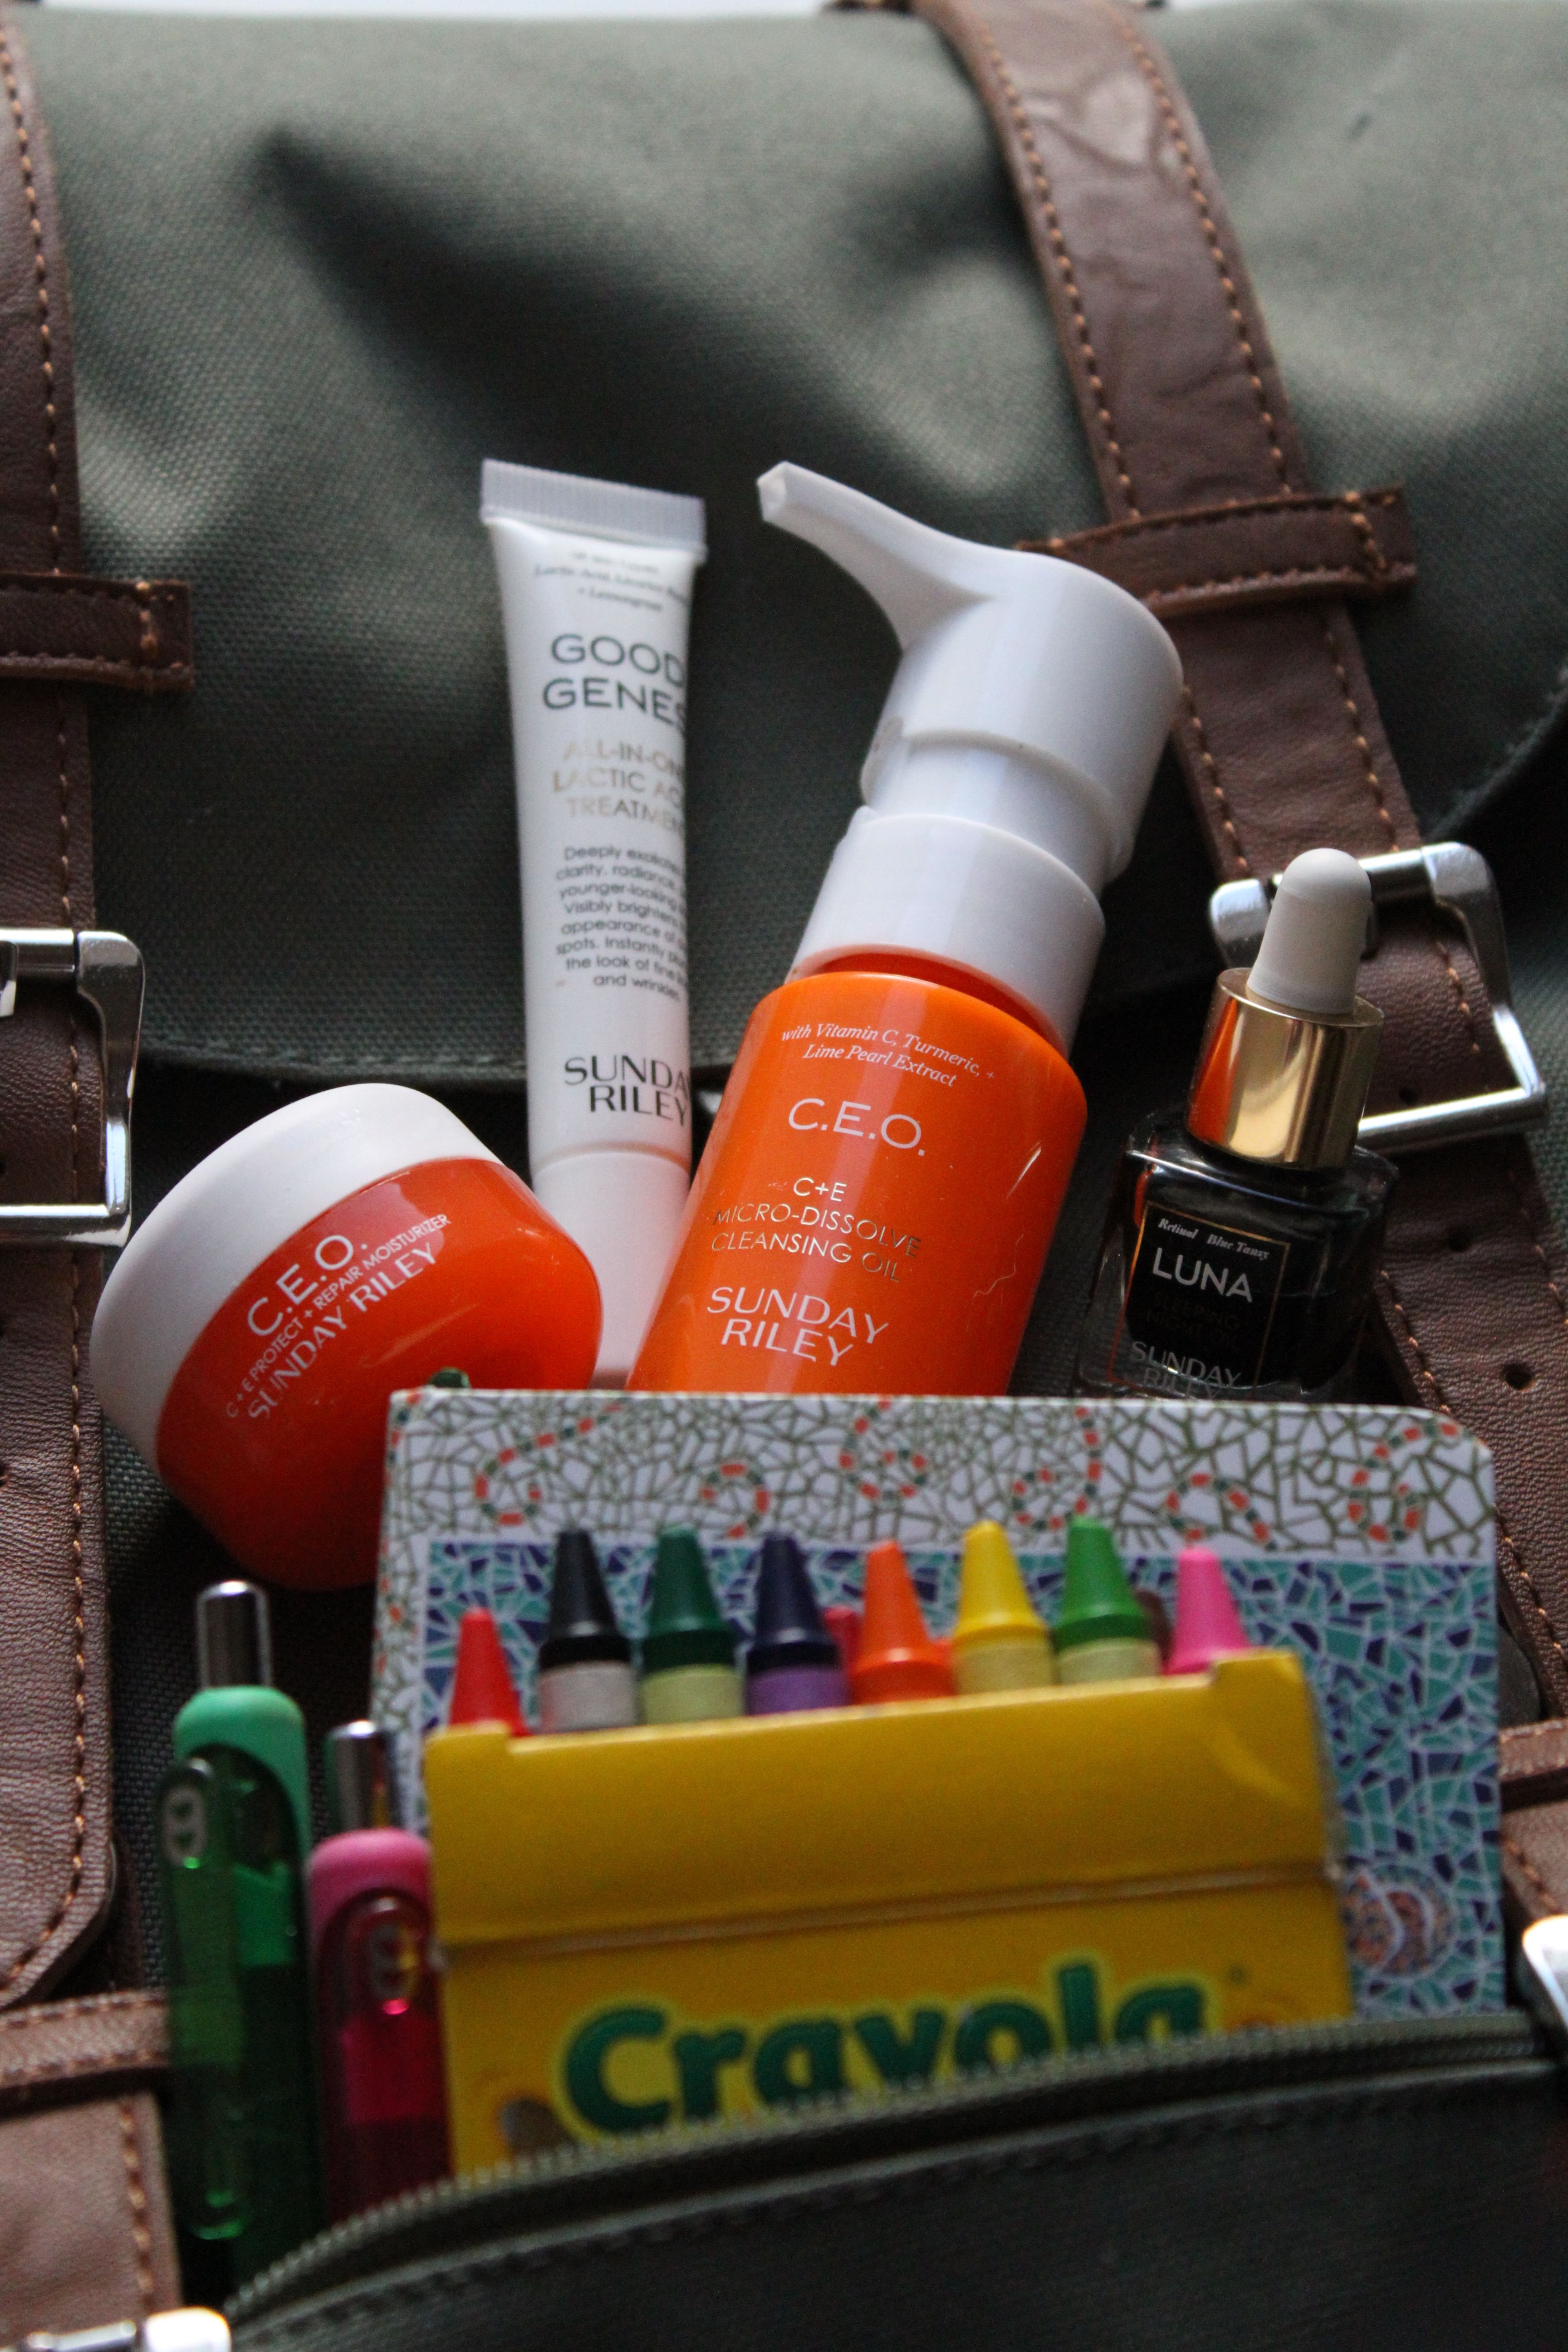 Skincare Review of Back to School Sunday Riley KIT